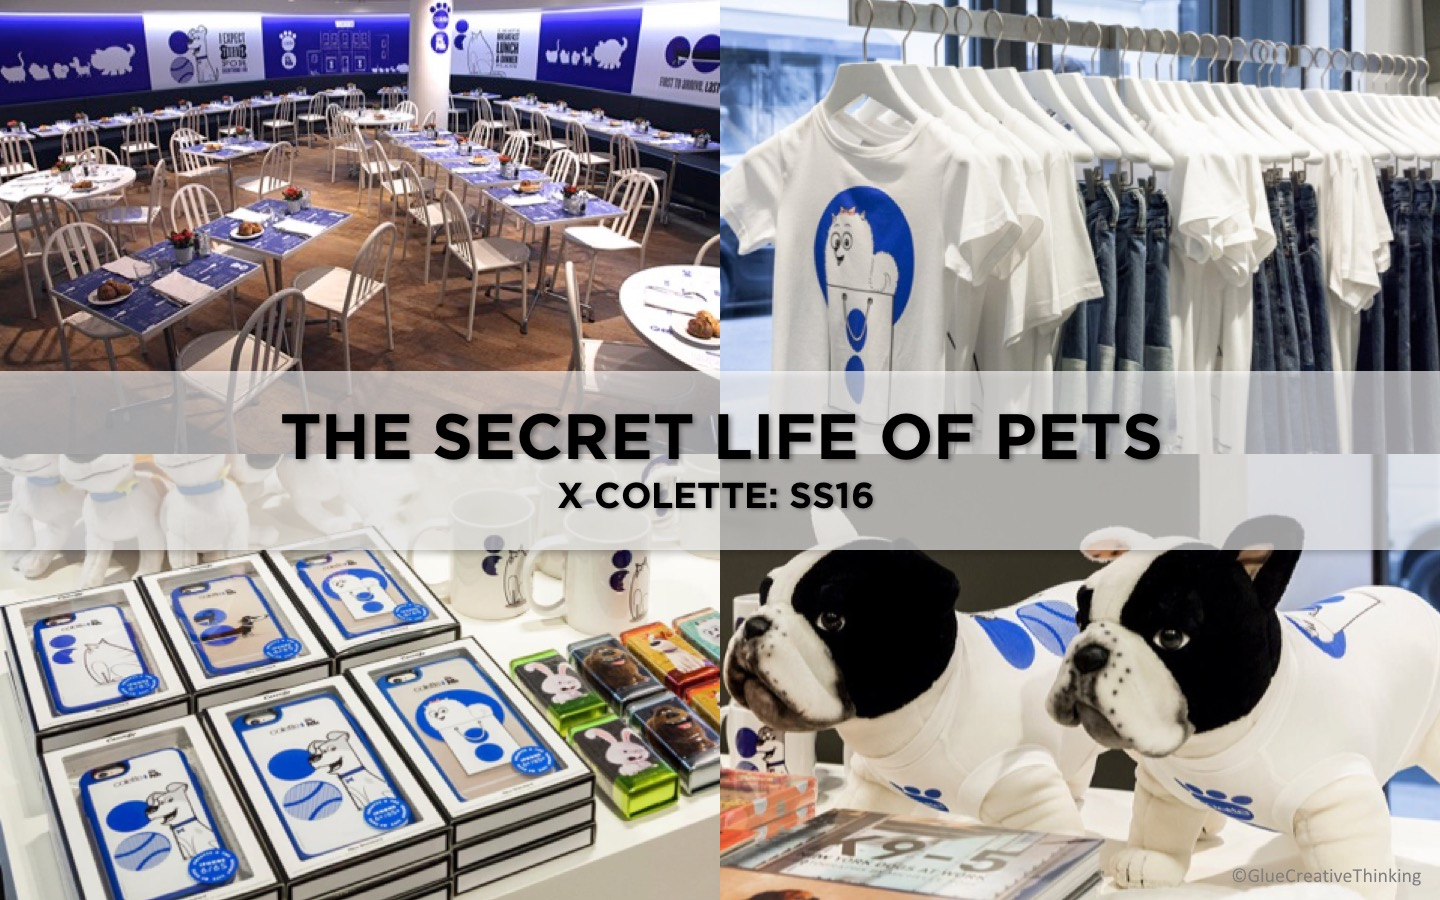 THE SECRET LIFE OF PETS X COLETTE